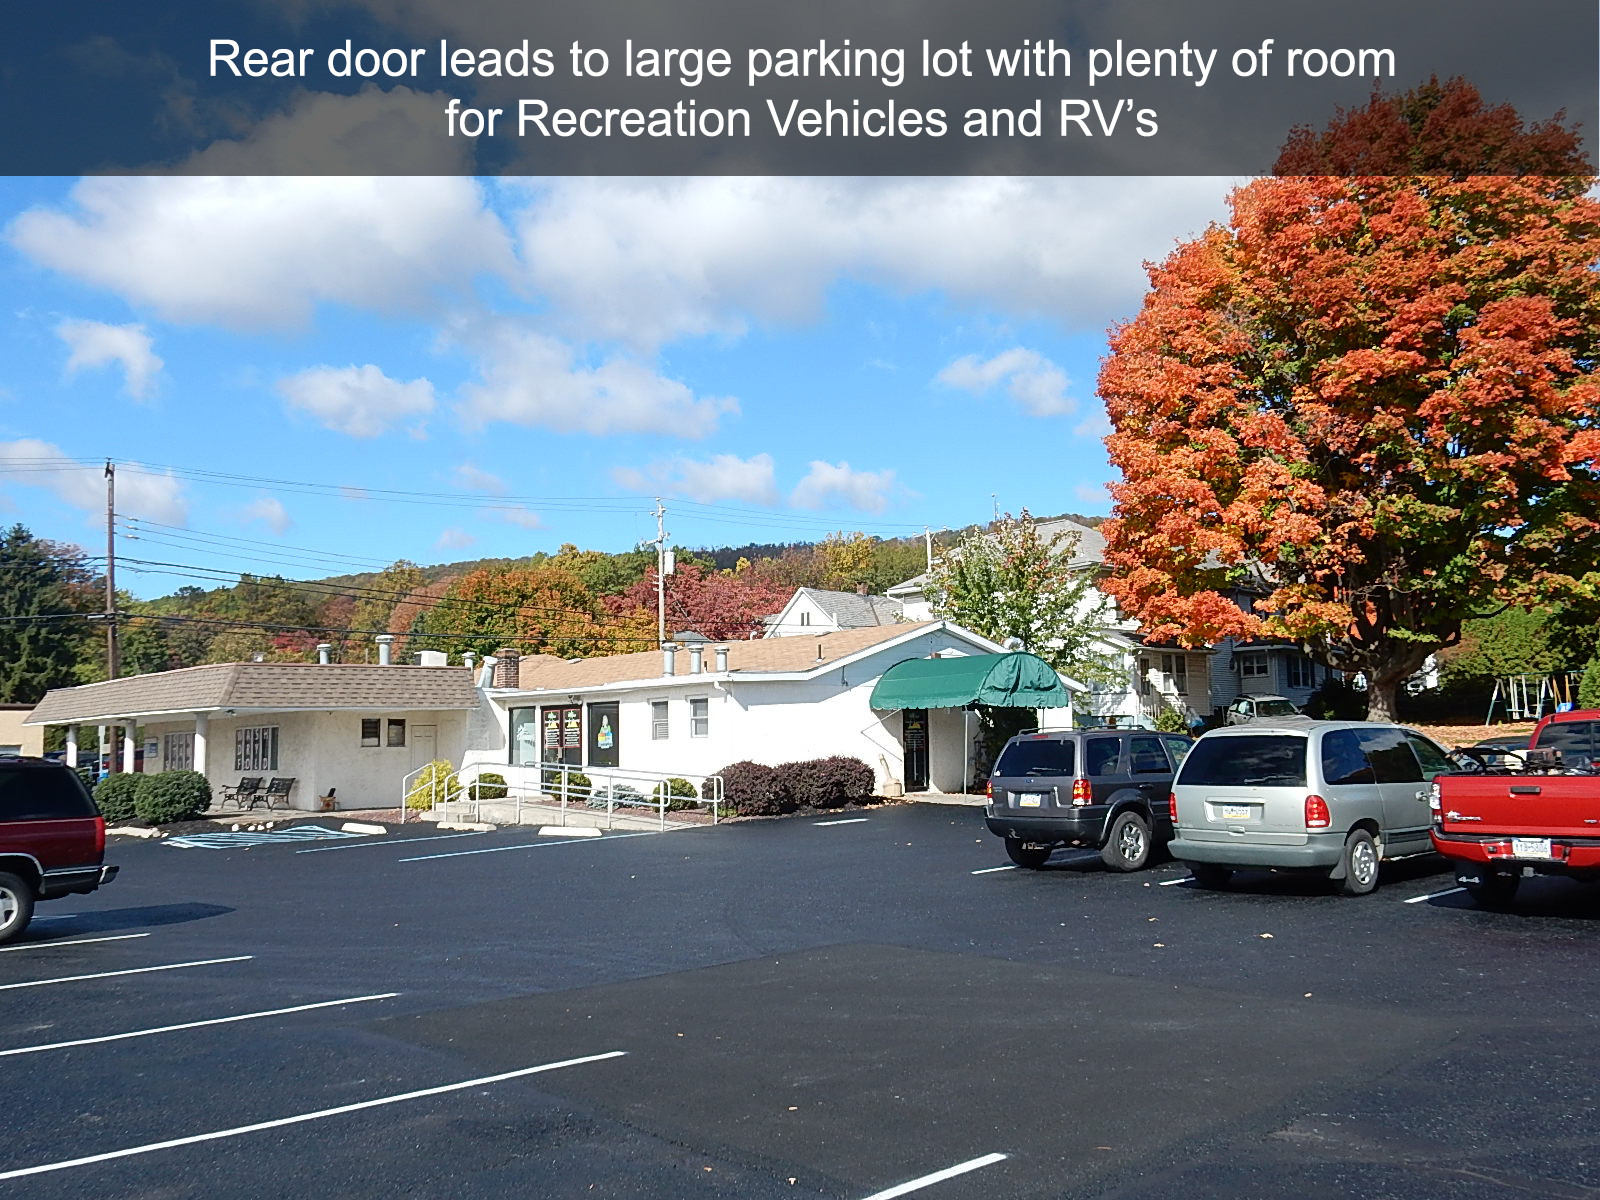 Rear door leads to large parking lot with plenty of room for Recreation Vehicles and RV's